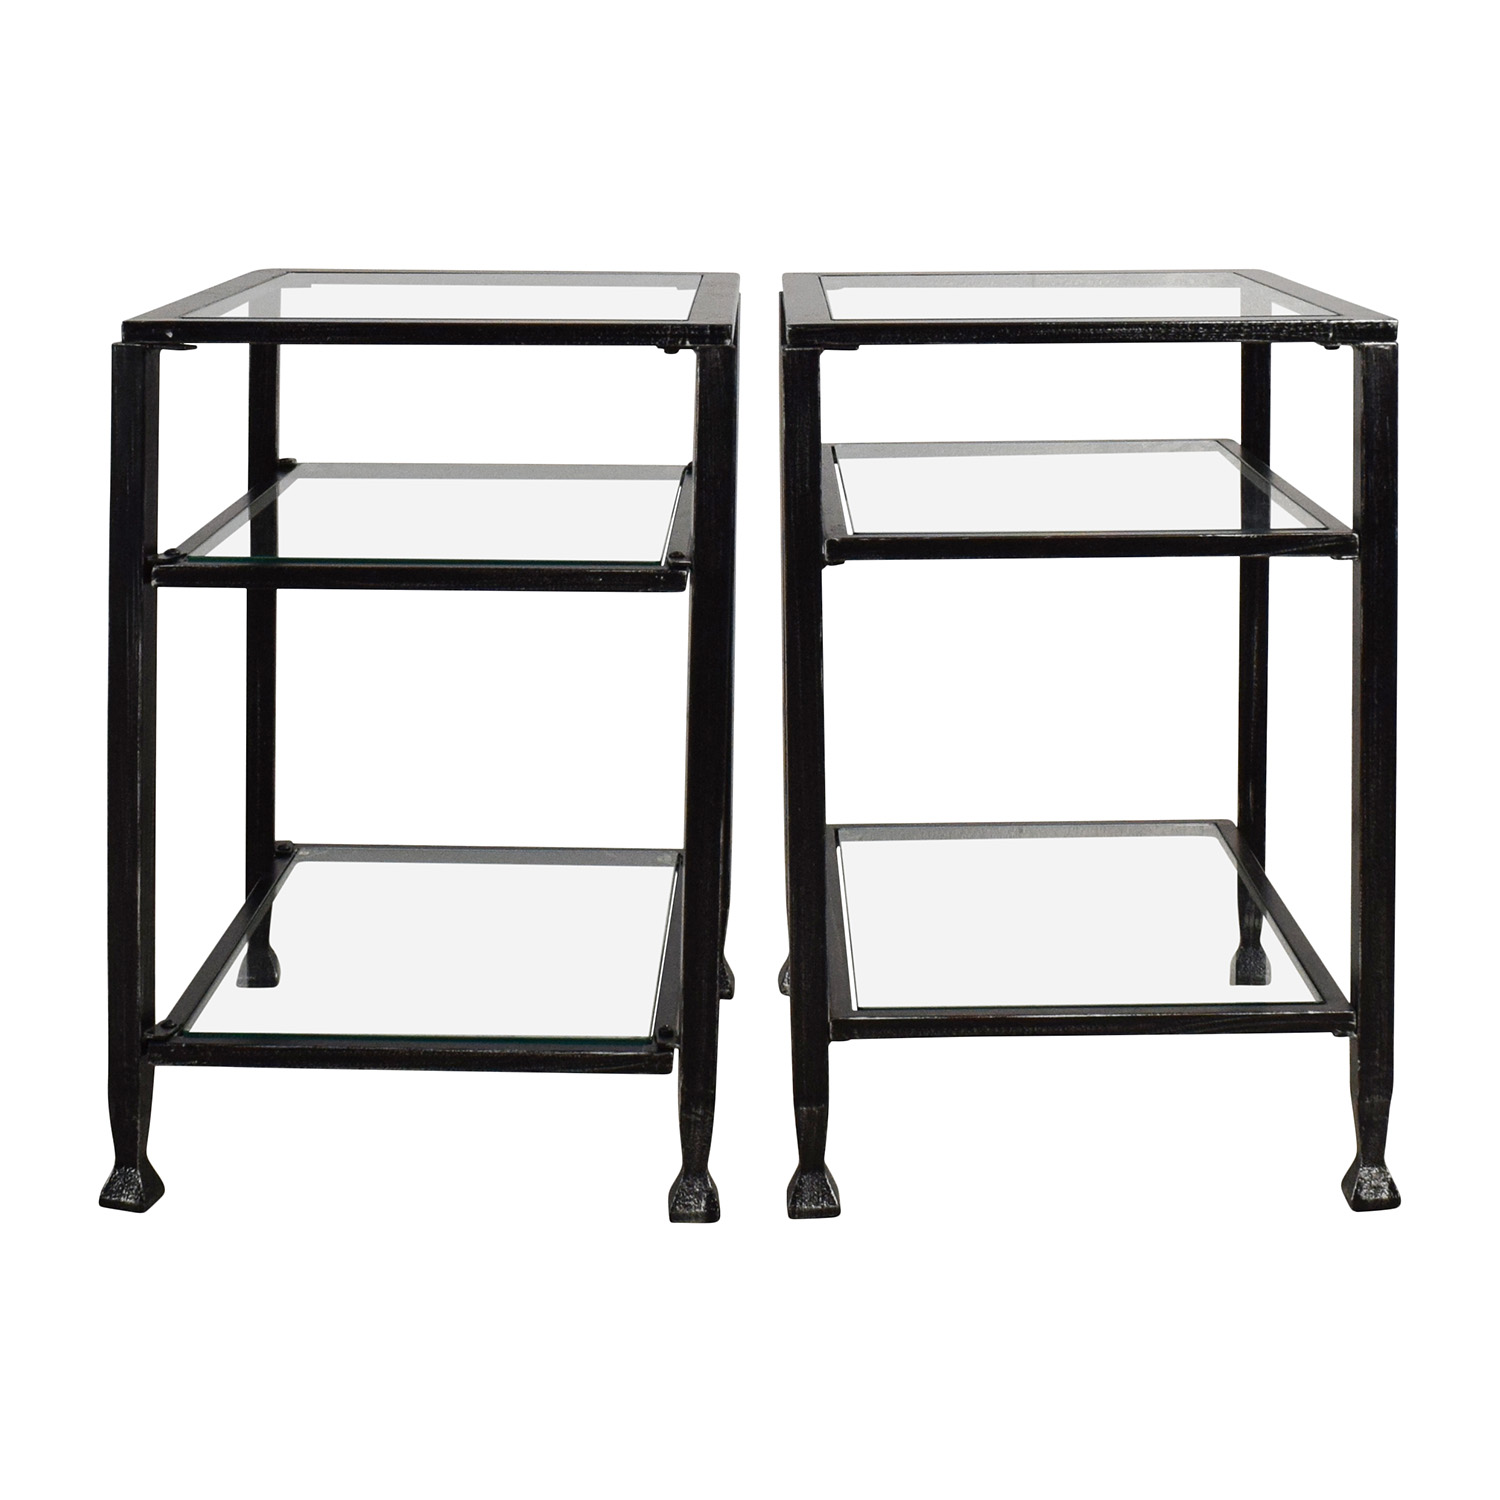 off harper blvd bunch metal glass end table pair black tables coupon carolina panthers colors foot farmhouse ikea living room side lamp with drawer fine furniture frame base round